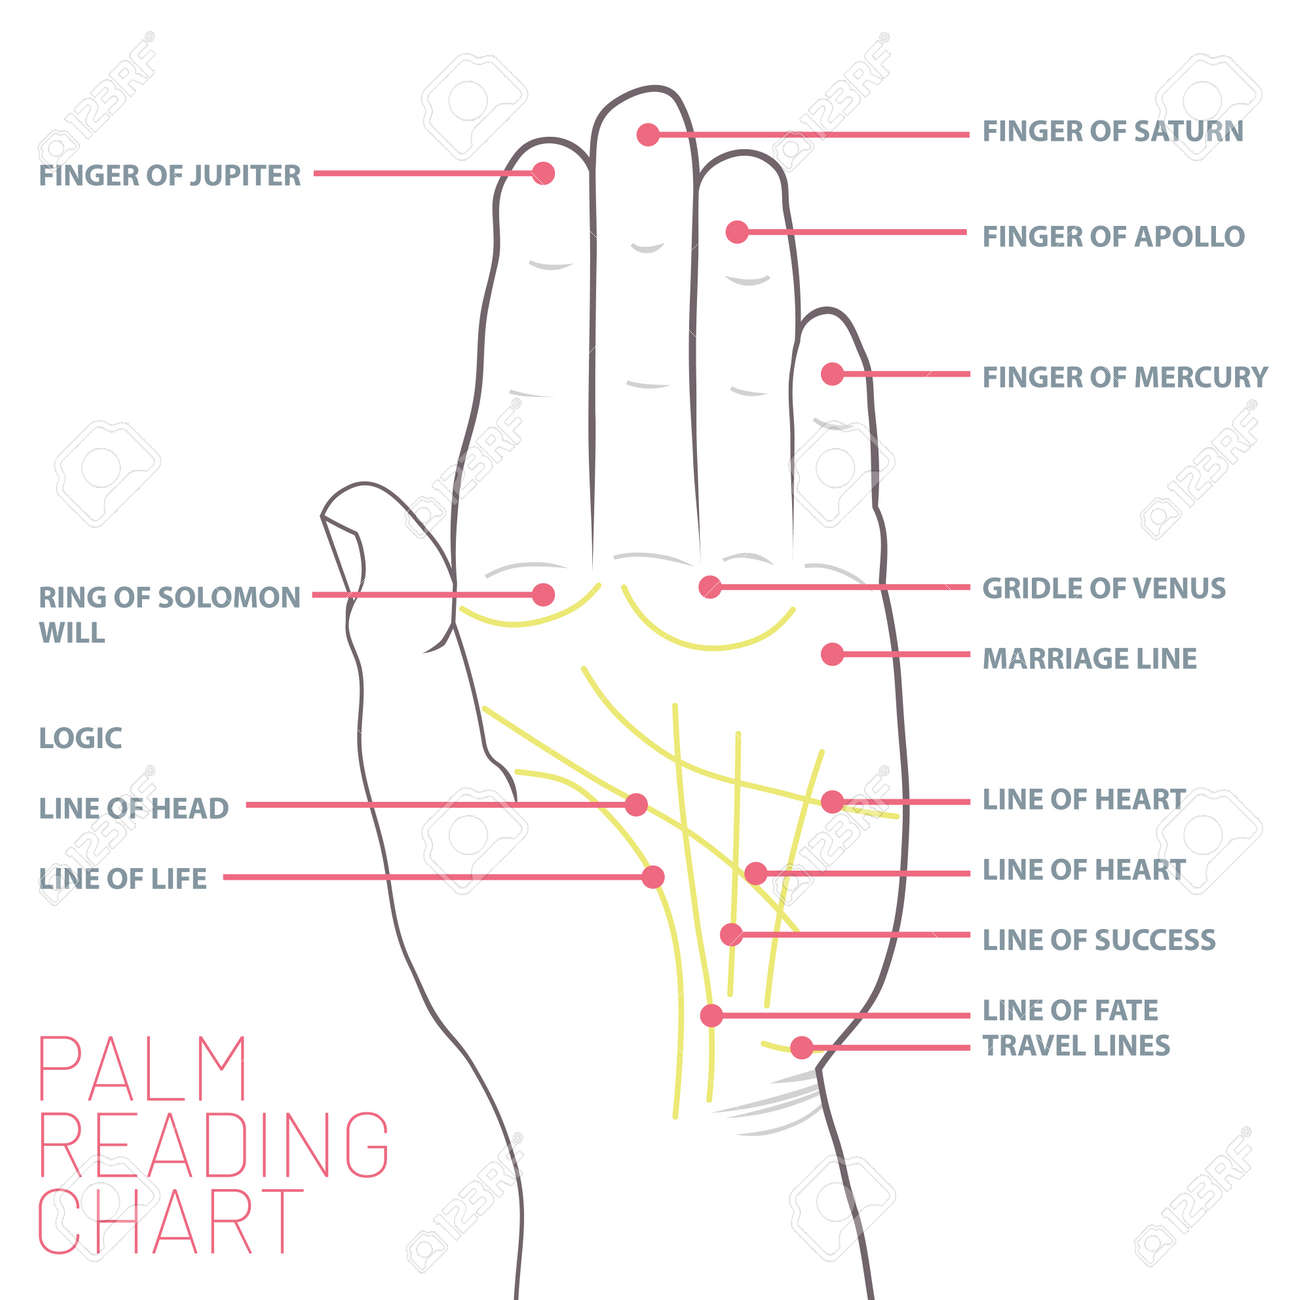 Palm reading chart palmistry map of the palm s main lines royalty